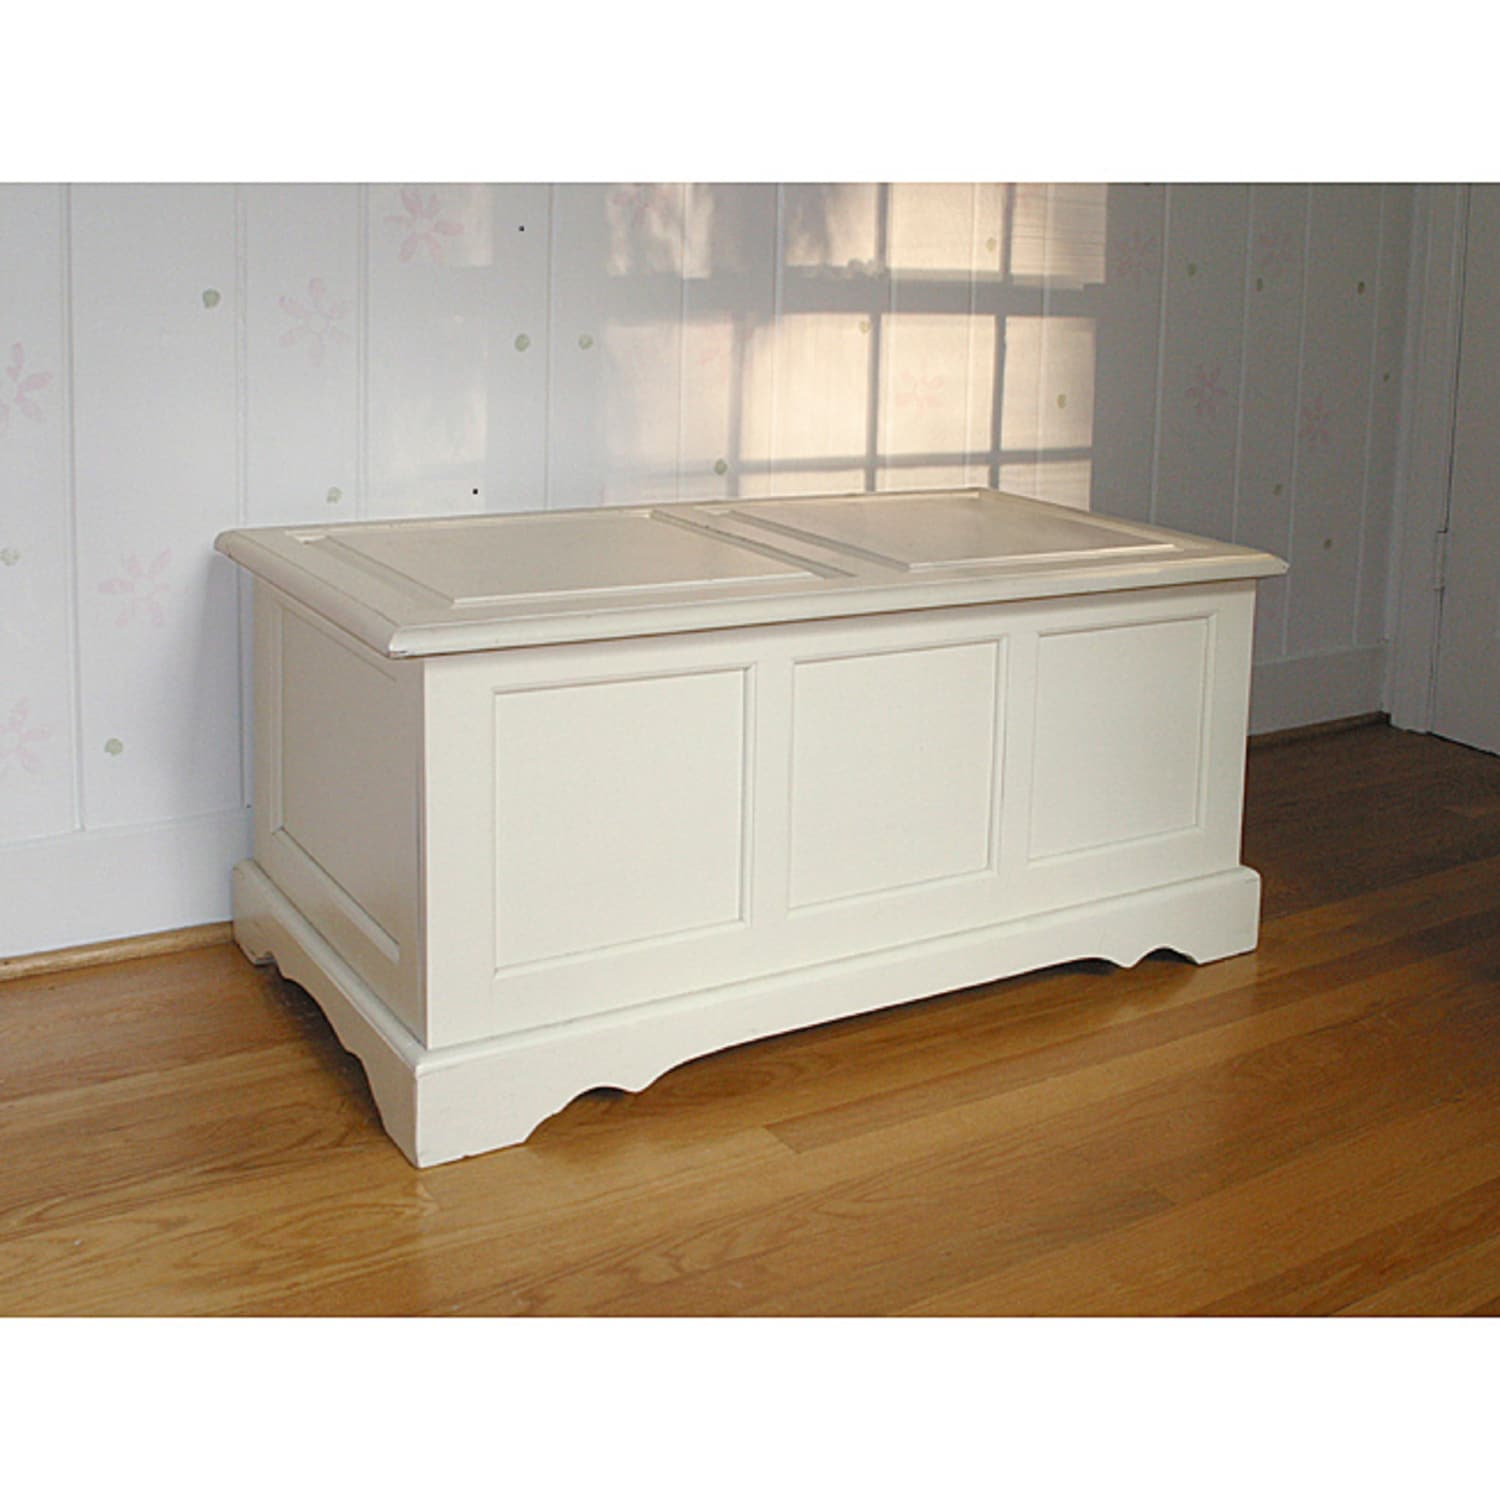 Ant. Ivory Devonshire Blanket Chest at Sears.com